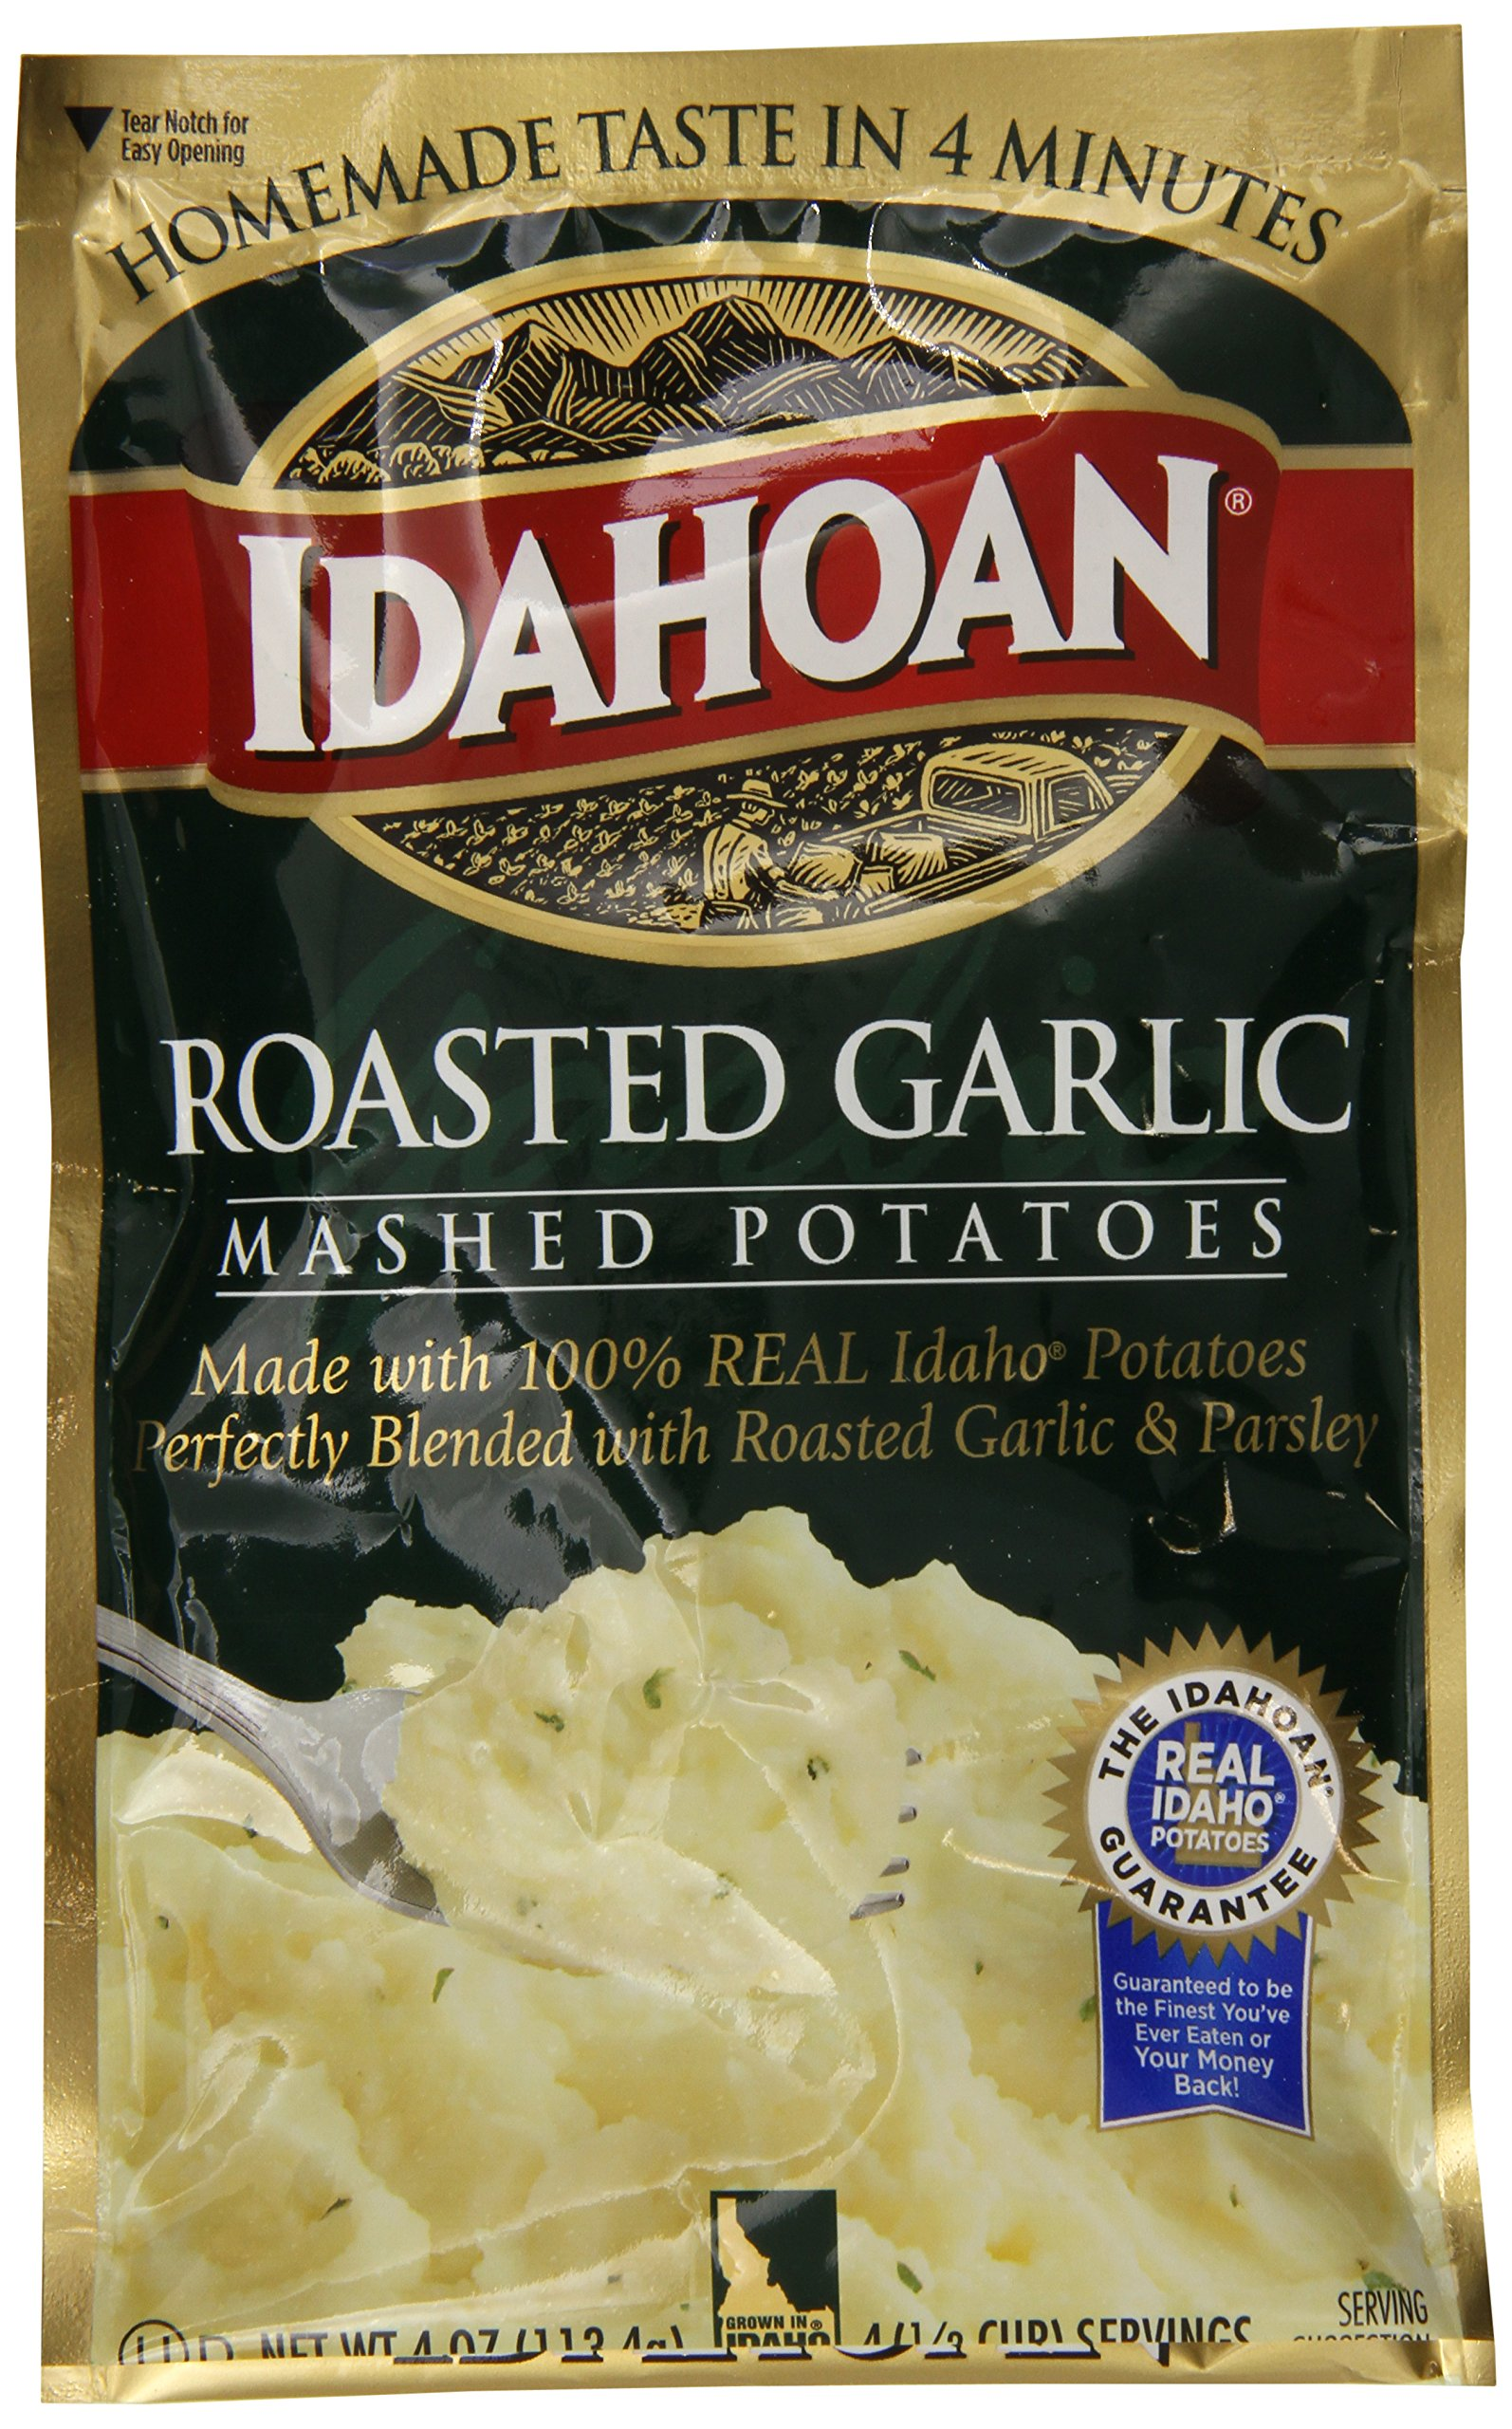 Idahoan Mashed Potatoes, Roasted Garlic, 4-Ounce Package (Pack of 12)